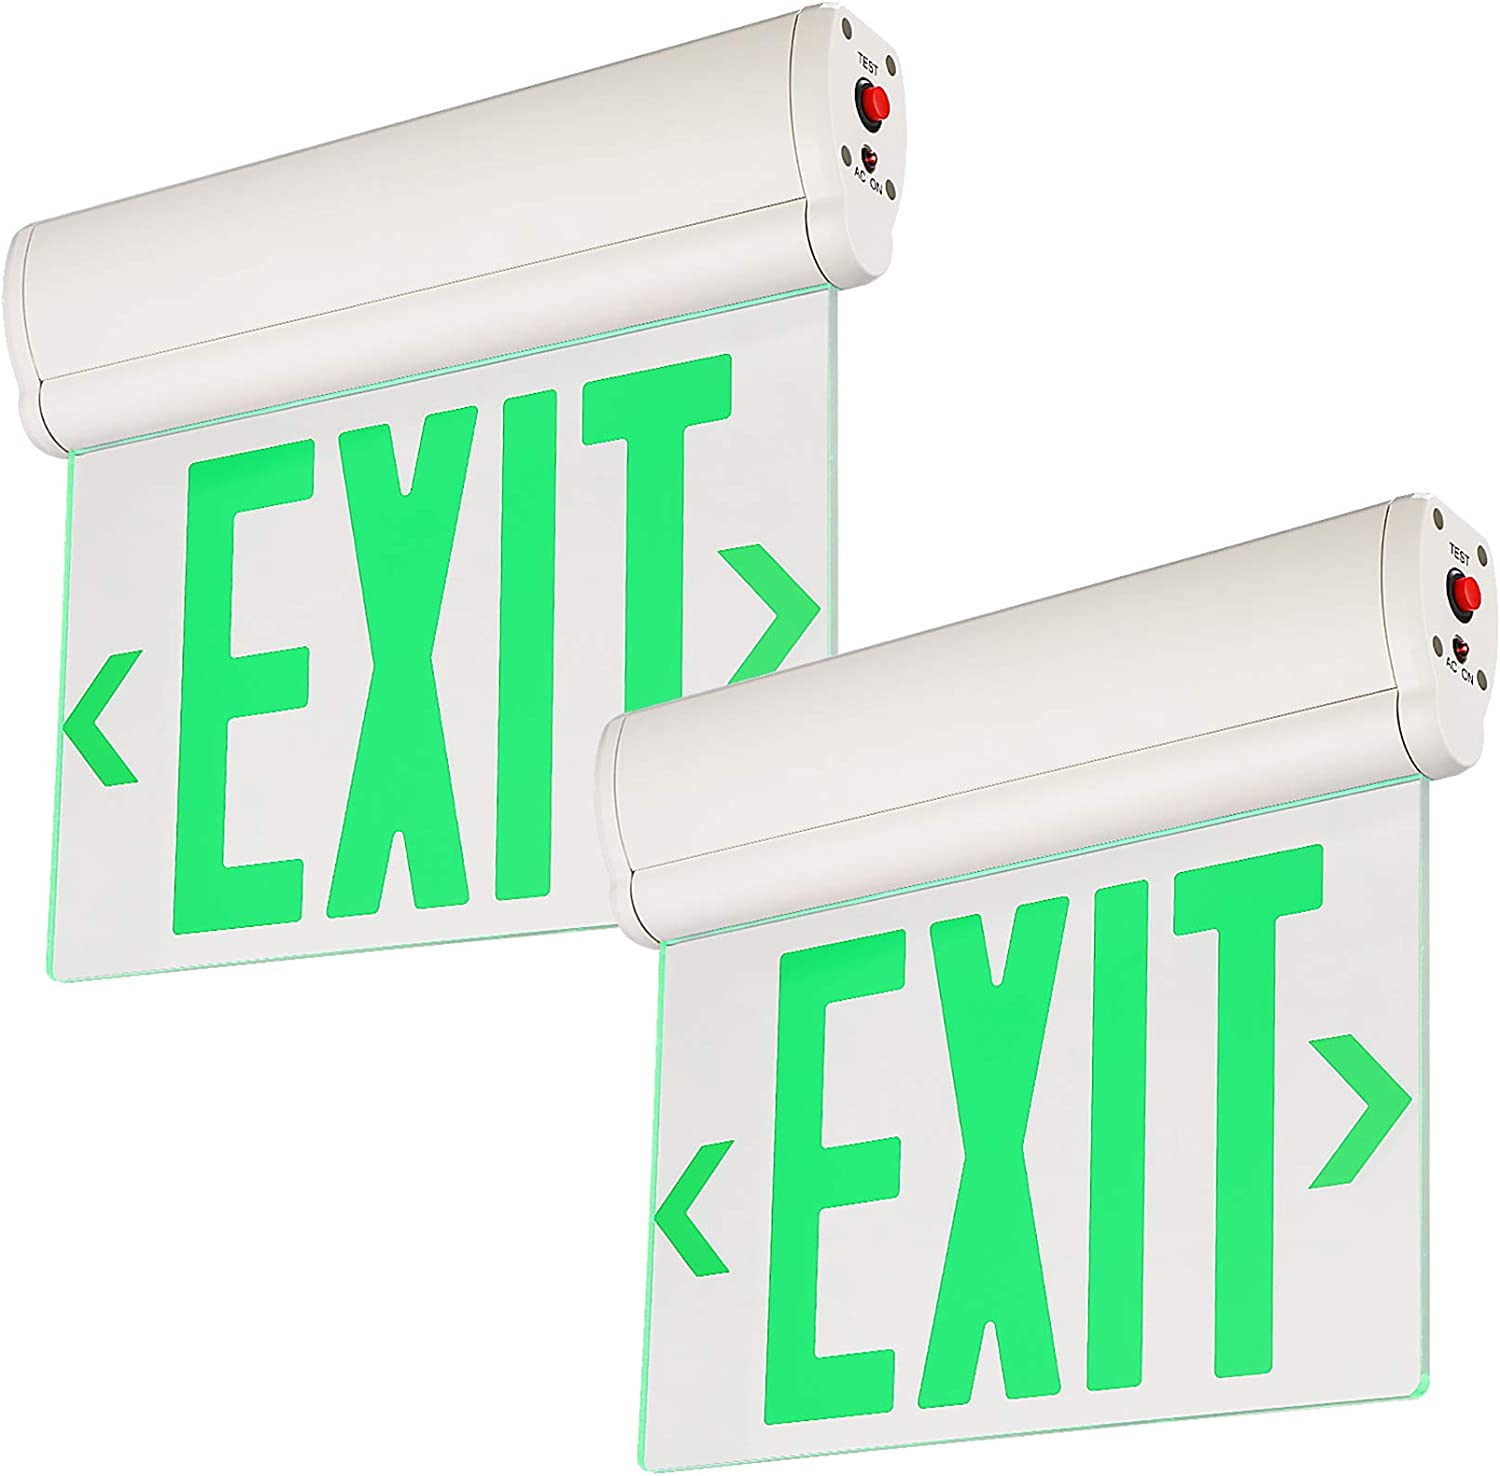 LEONLITE Green LED Edge Lit Sign, Exit Sign Light with Rotating Clear Panel, Ceiling/Left End/Wall Mount, Single Acrylic Face, UL Listed, AC120V/277V, Battery Backup Green Edge Light, Pack of 2